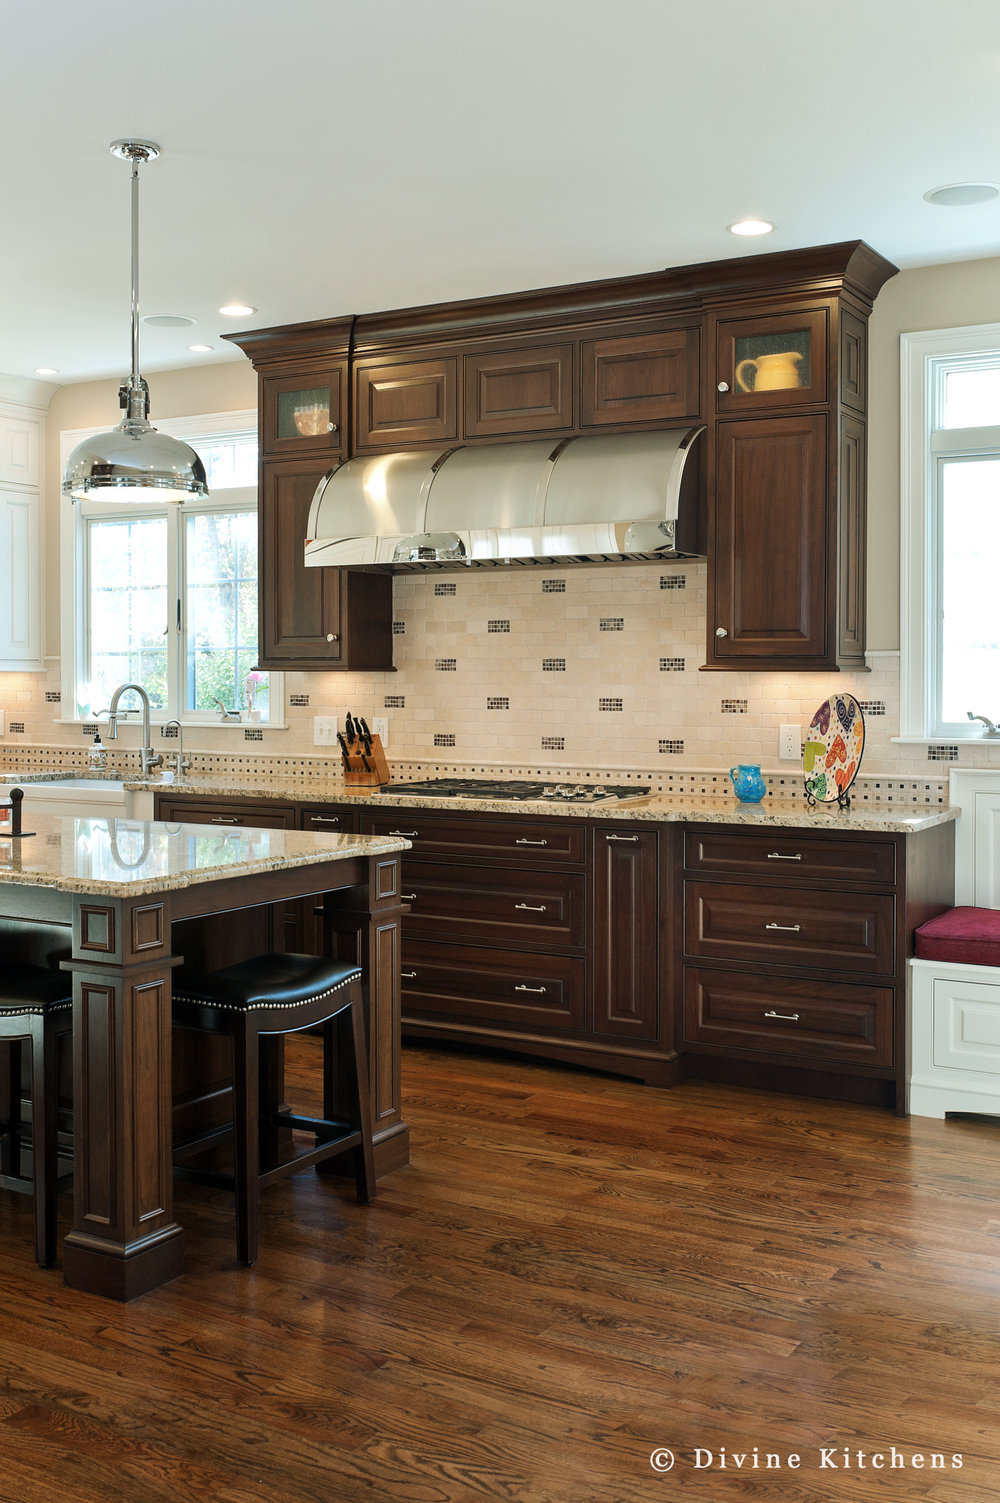 Large traditional kitchen with dark wood cabinets and mosaic tile backsplash